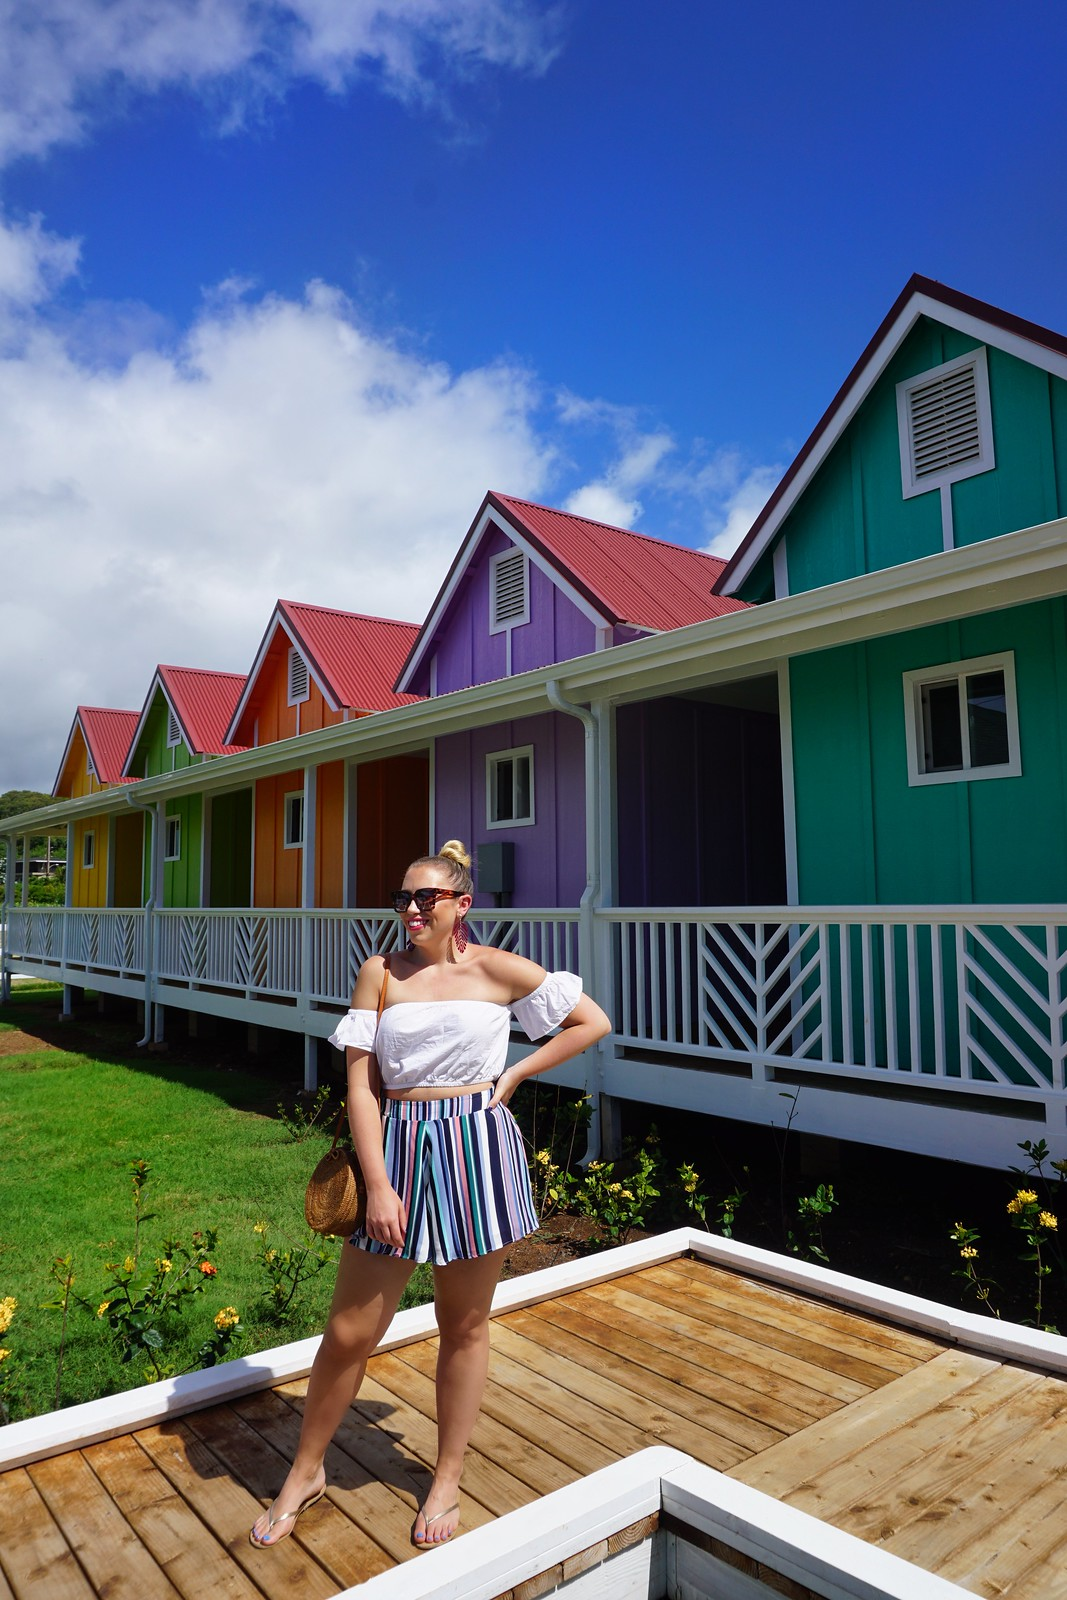 NoKa Fair Kapaa Kauai What to do in Kauai Hawaii Colorful Houses Rainbow Stores